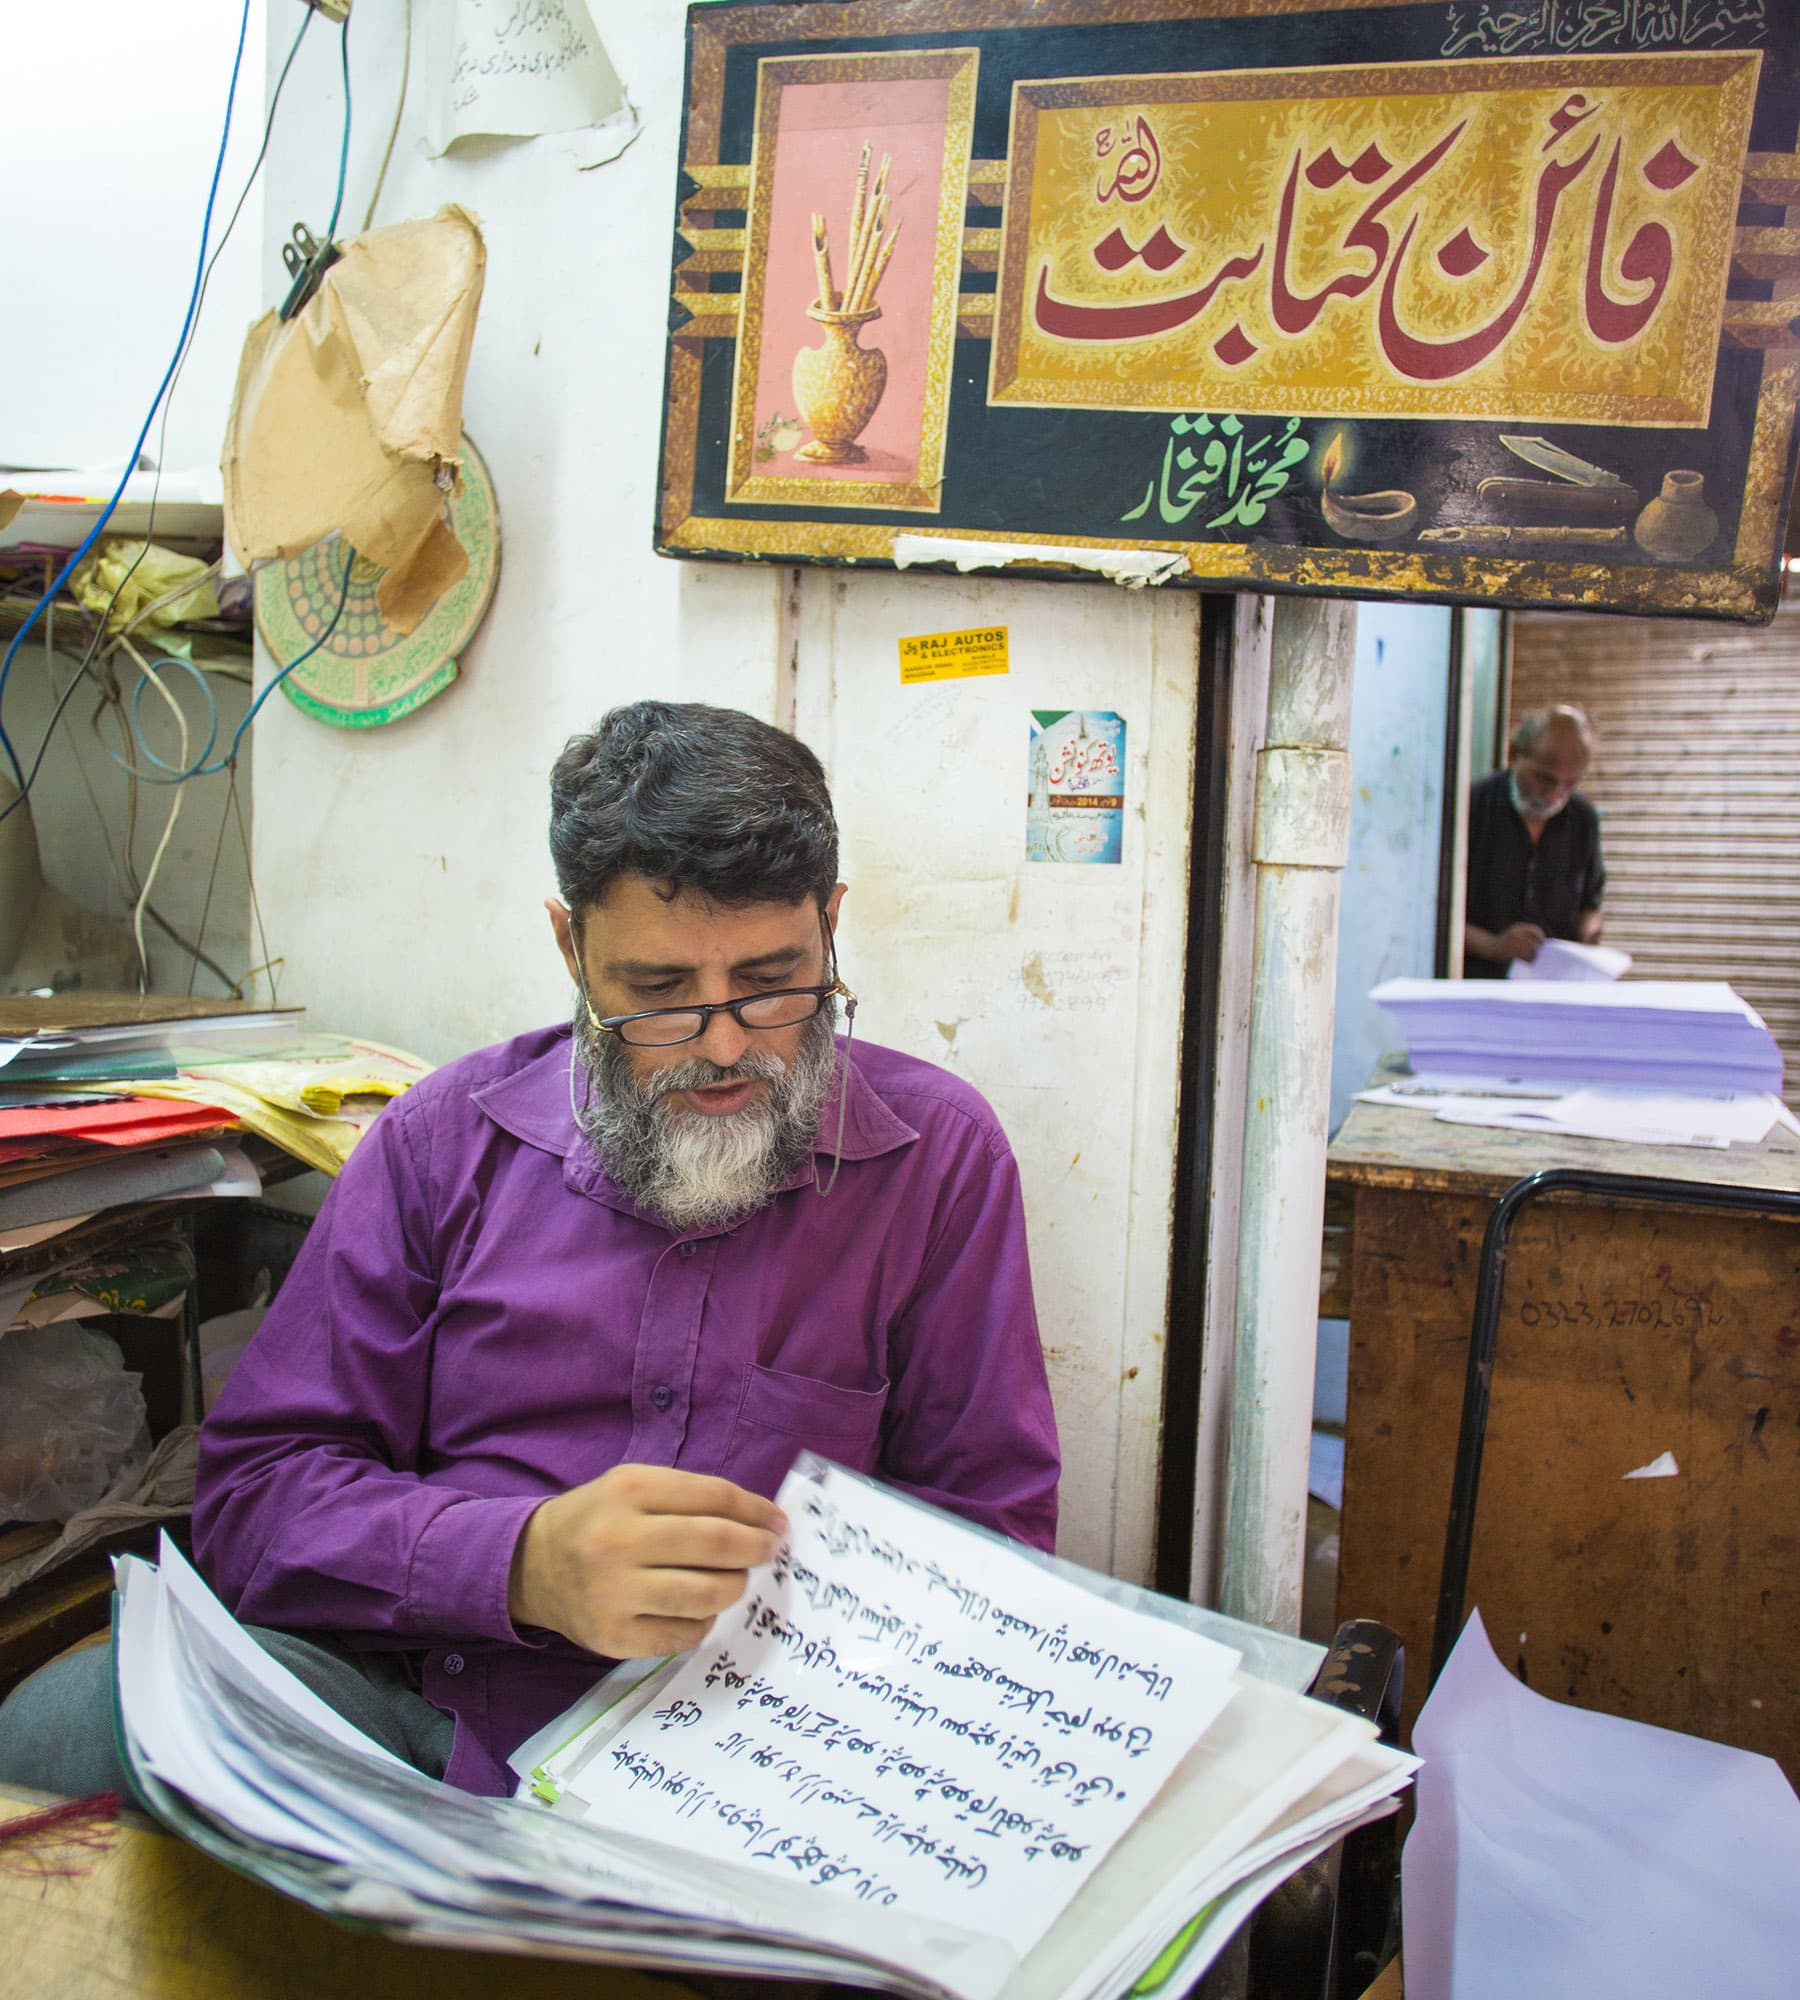 Muhammad Iftikhar in his roadside shop at Pakistan Chowk.